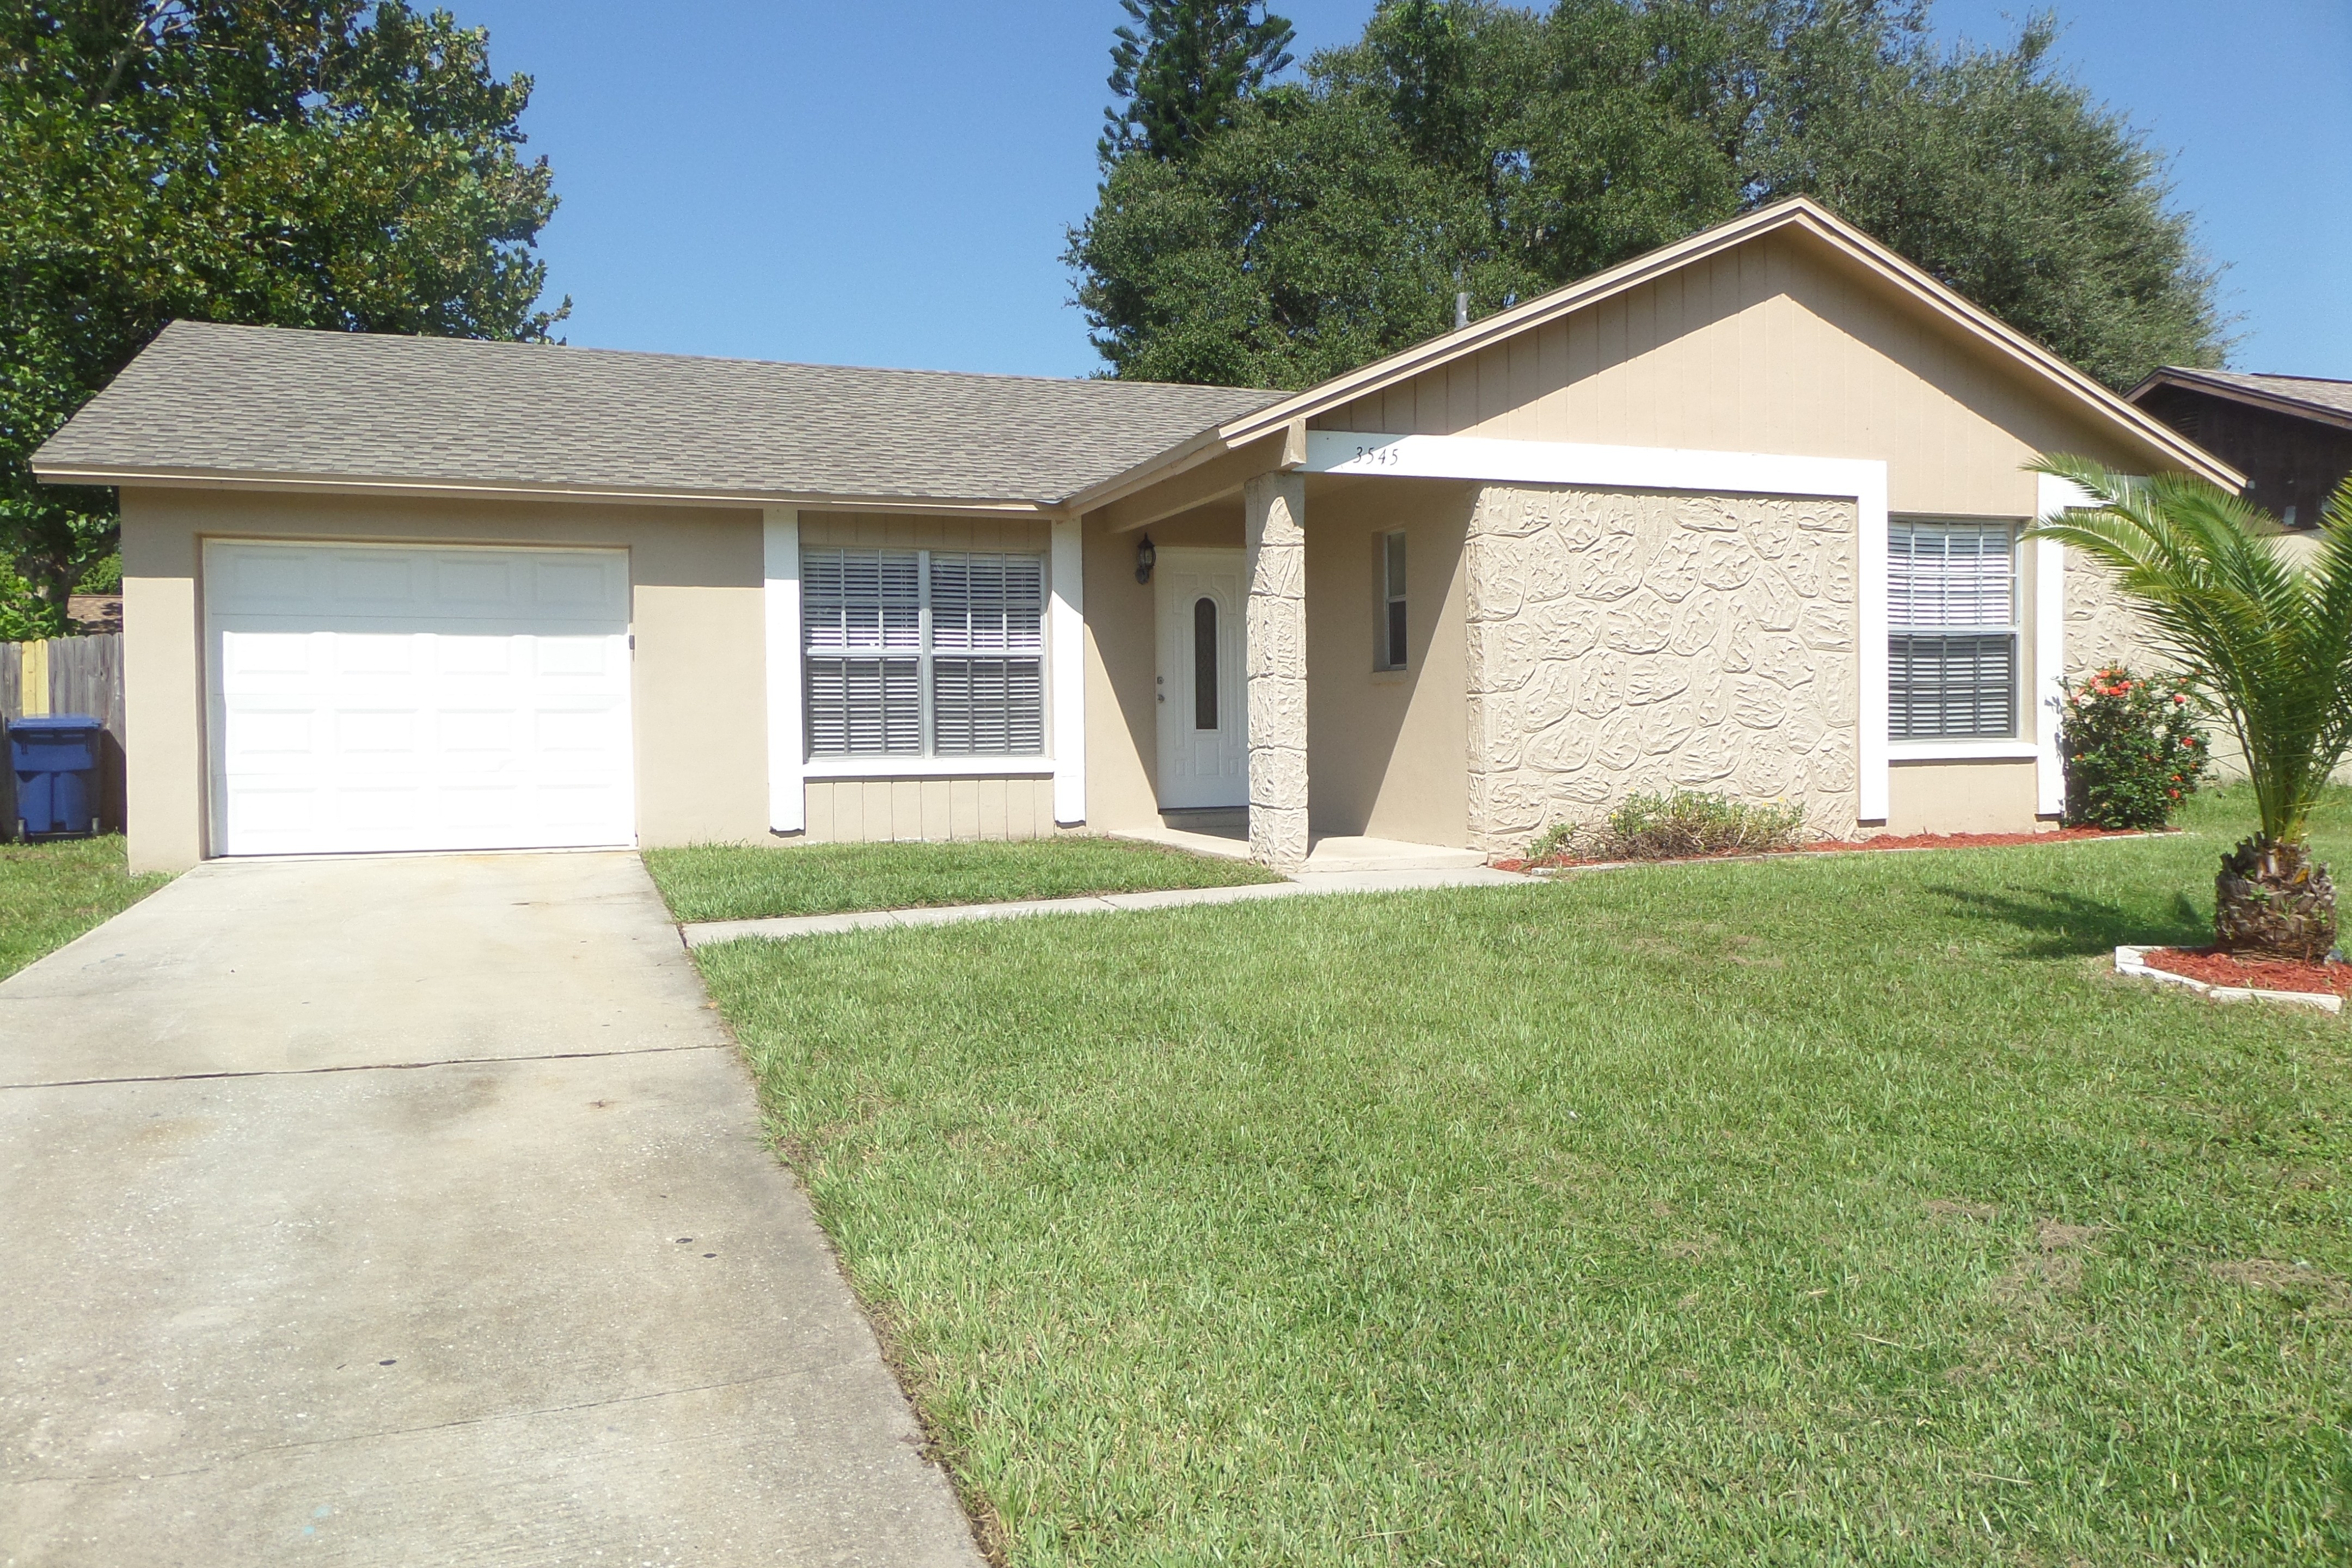 3545 Murrow St New Port Richey Fl 34655 3 Bedroom Apartment For Rent For 1 245 Month Zumper